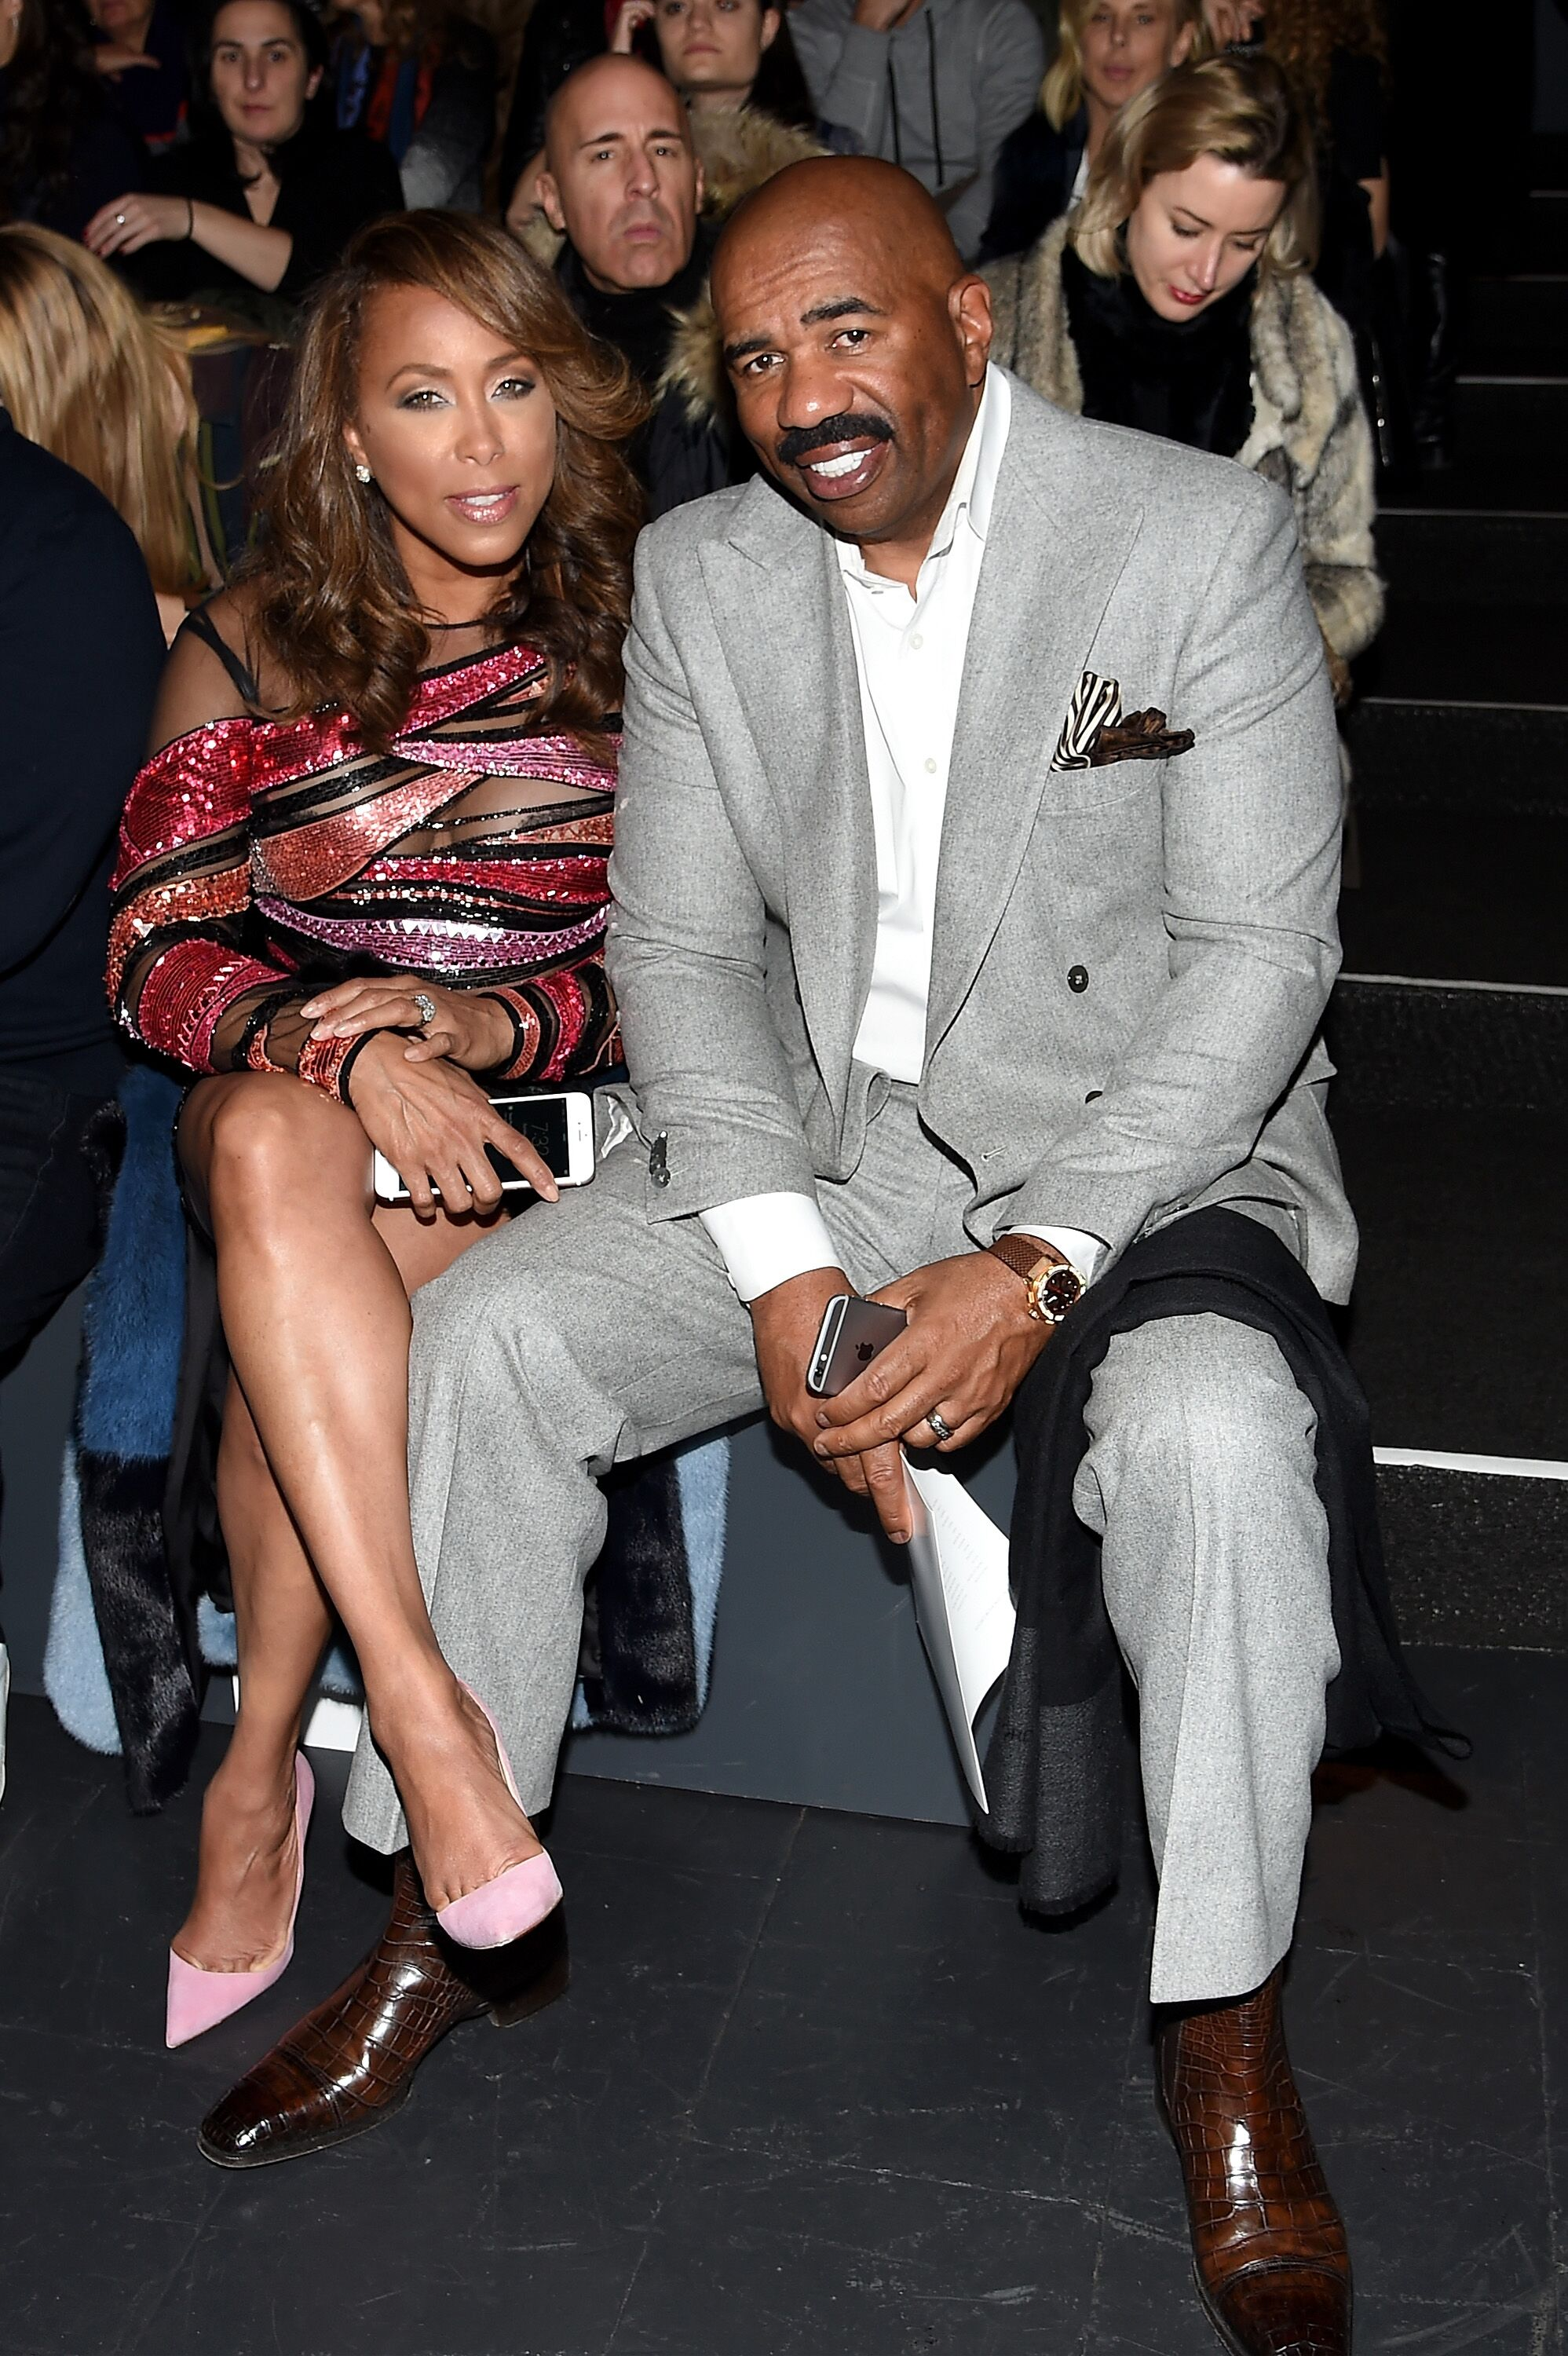 Steve Harvey and his third wife Marjorie at the Prabal Gurung Fall 2016 show during New York Fashion Week | Source: Getty Images